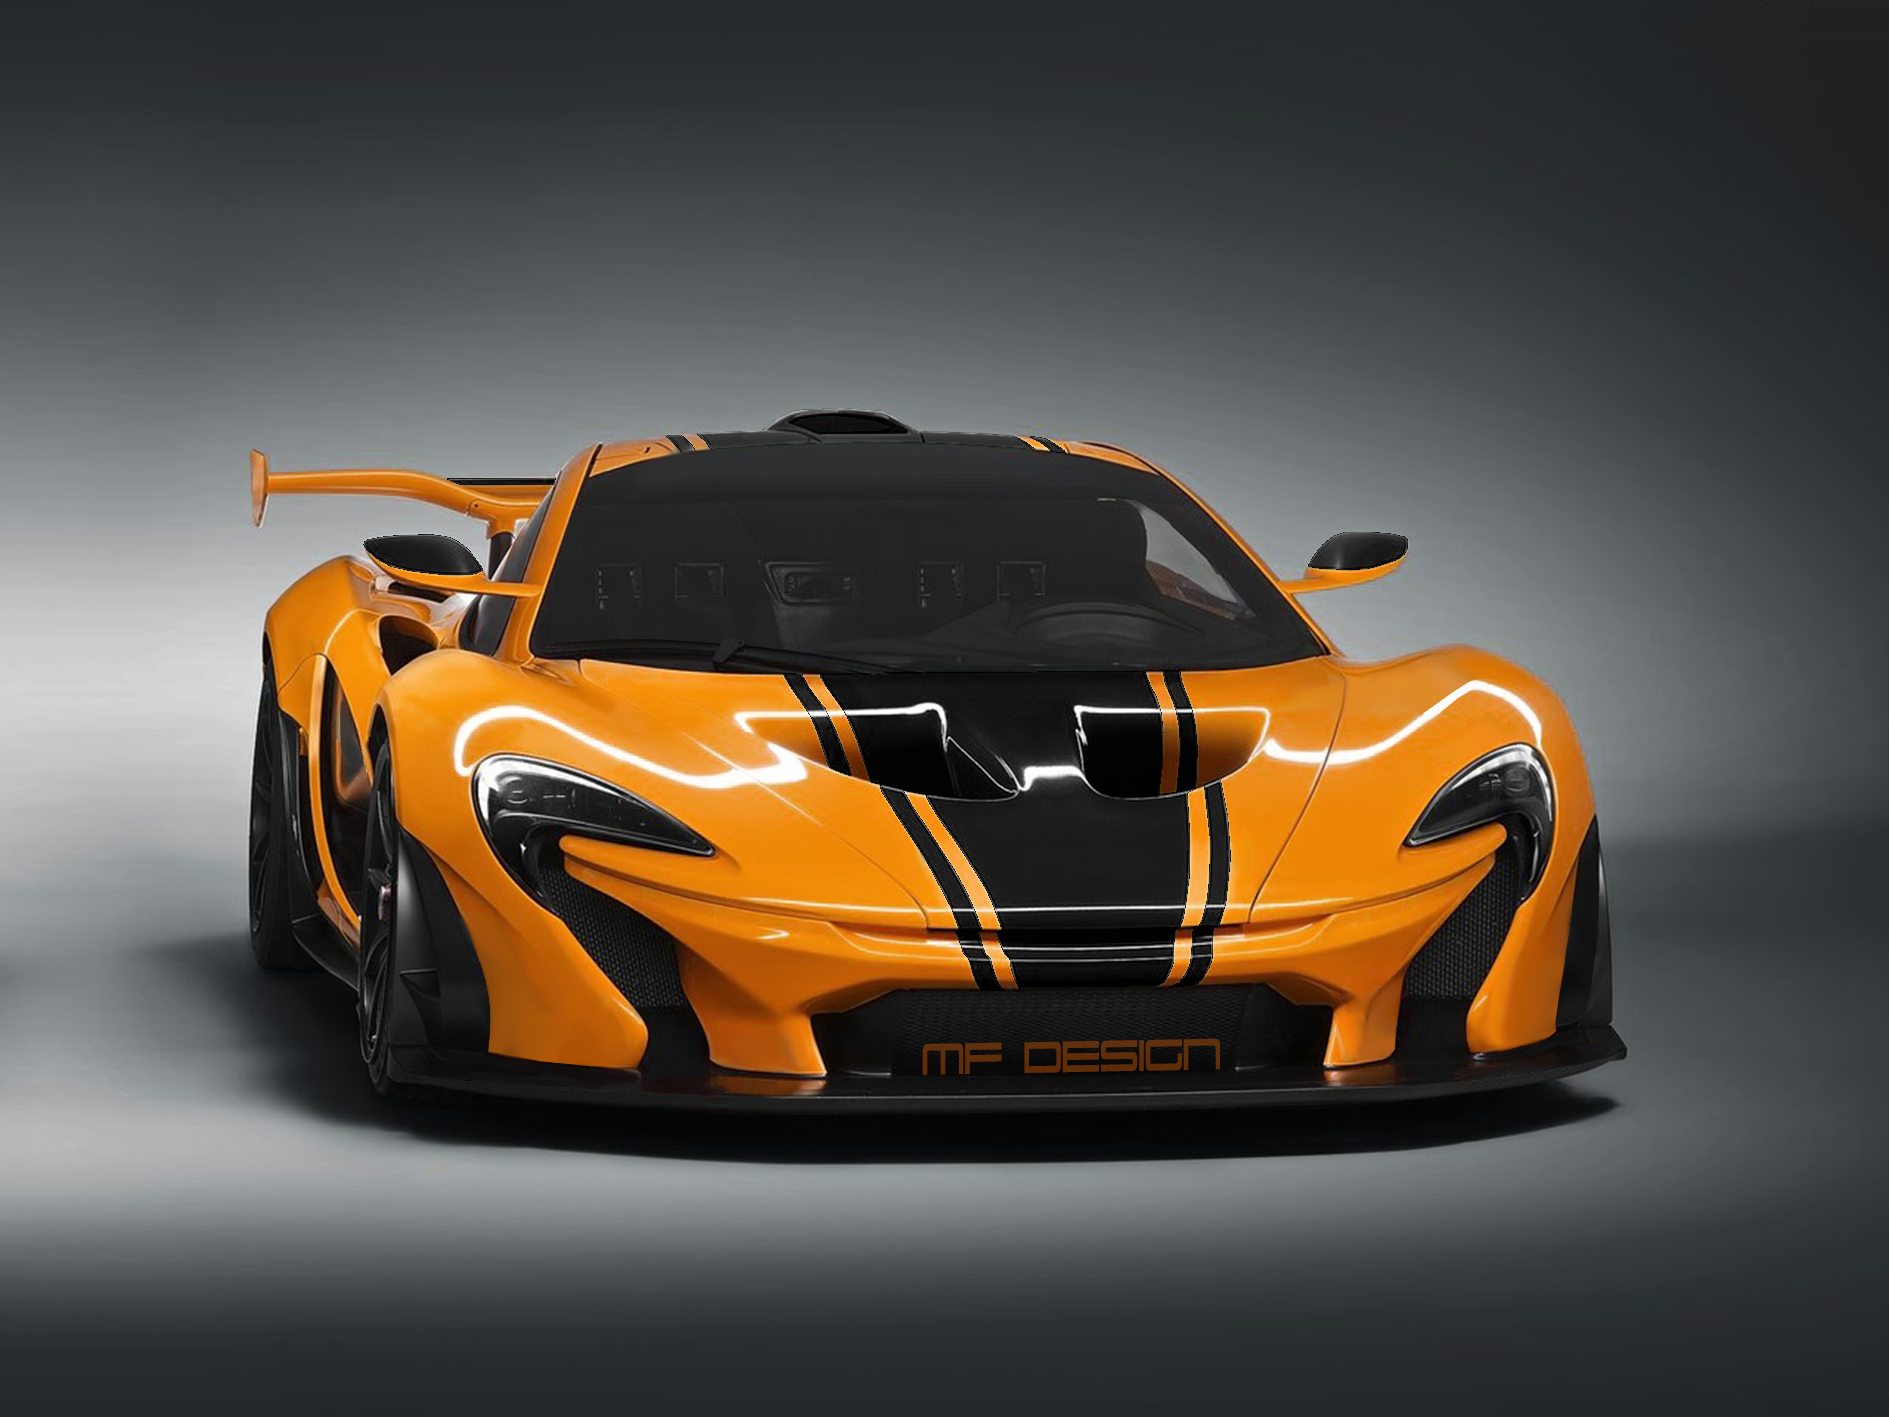 My rendering of a McLaren P1 LM Thoughts